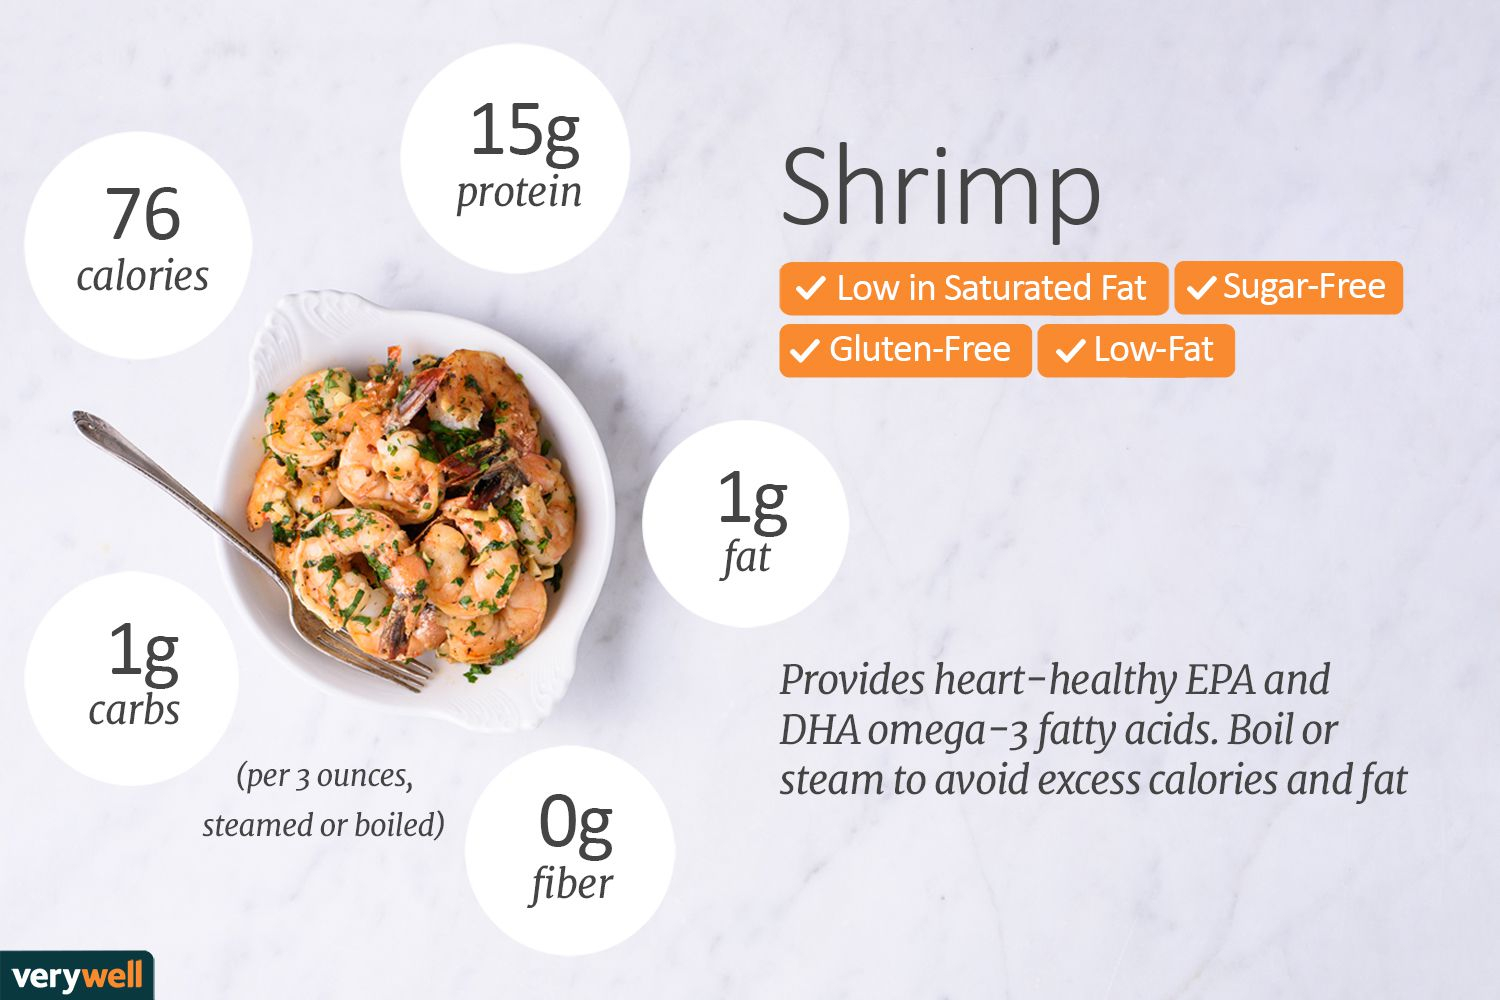 shrimp nutrition facts calories and health benefits. Black Bedroom Furniture Sets. Home Design Ideas